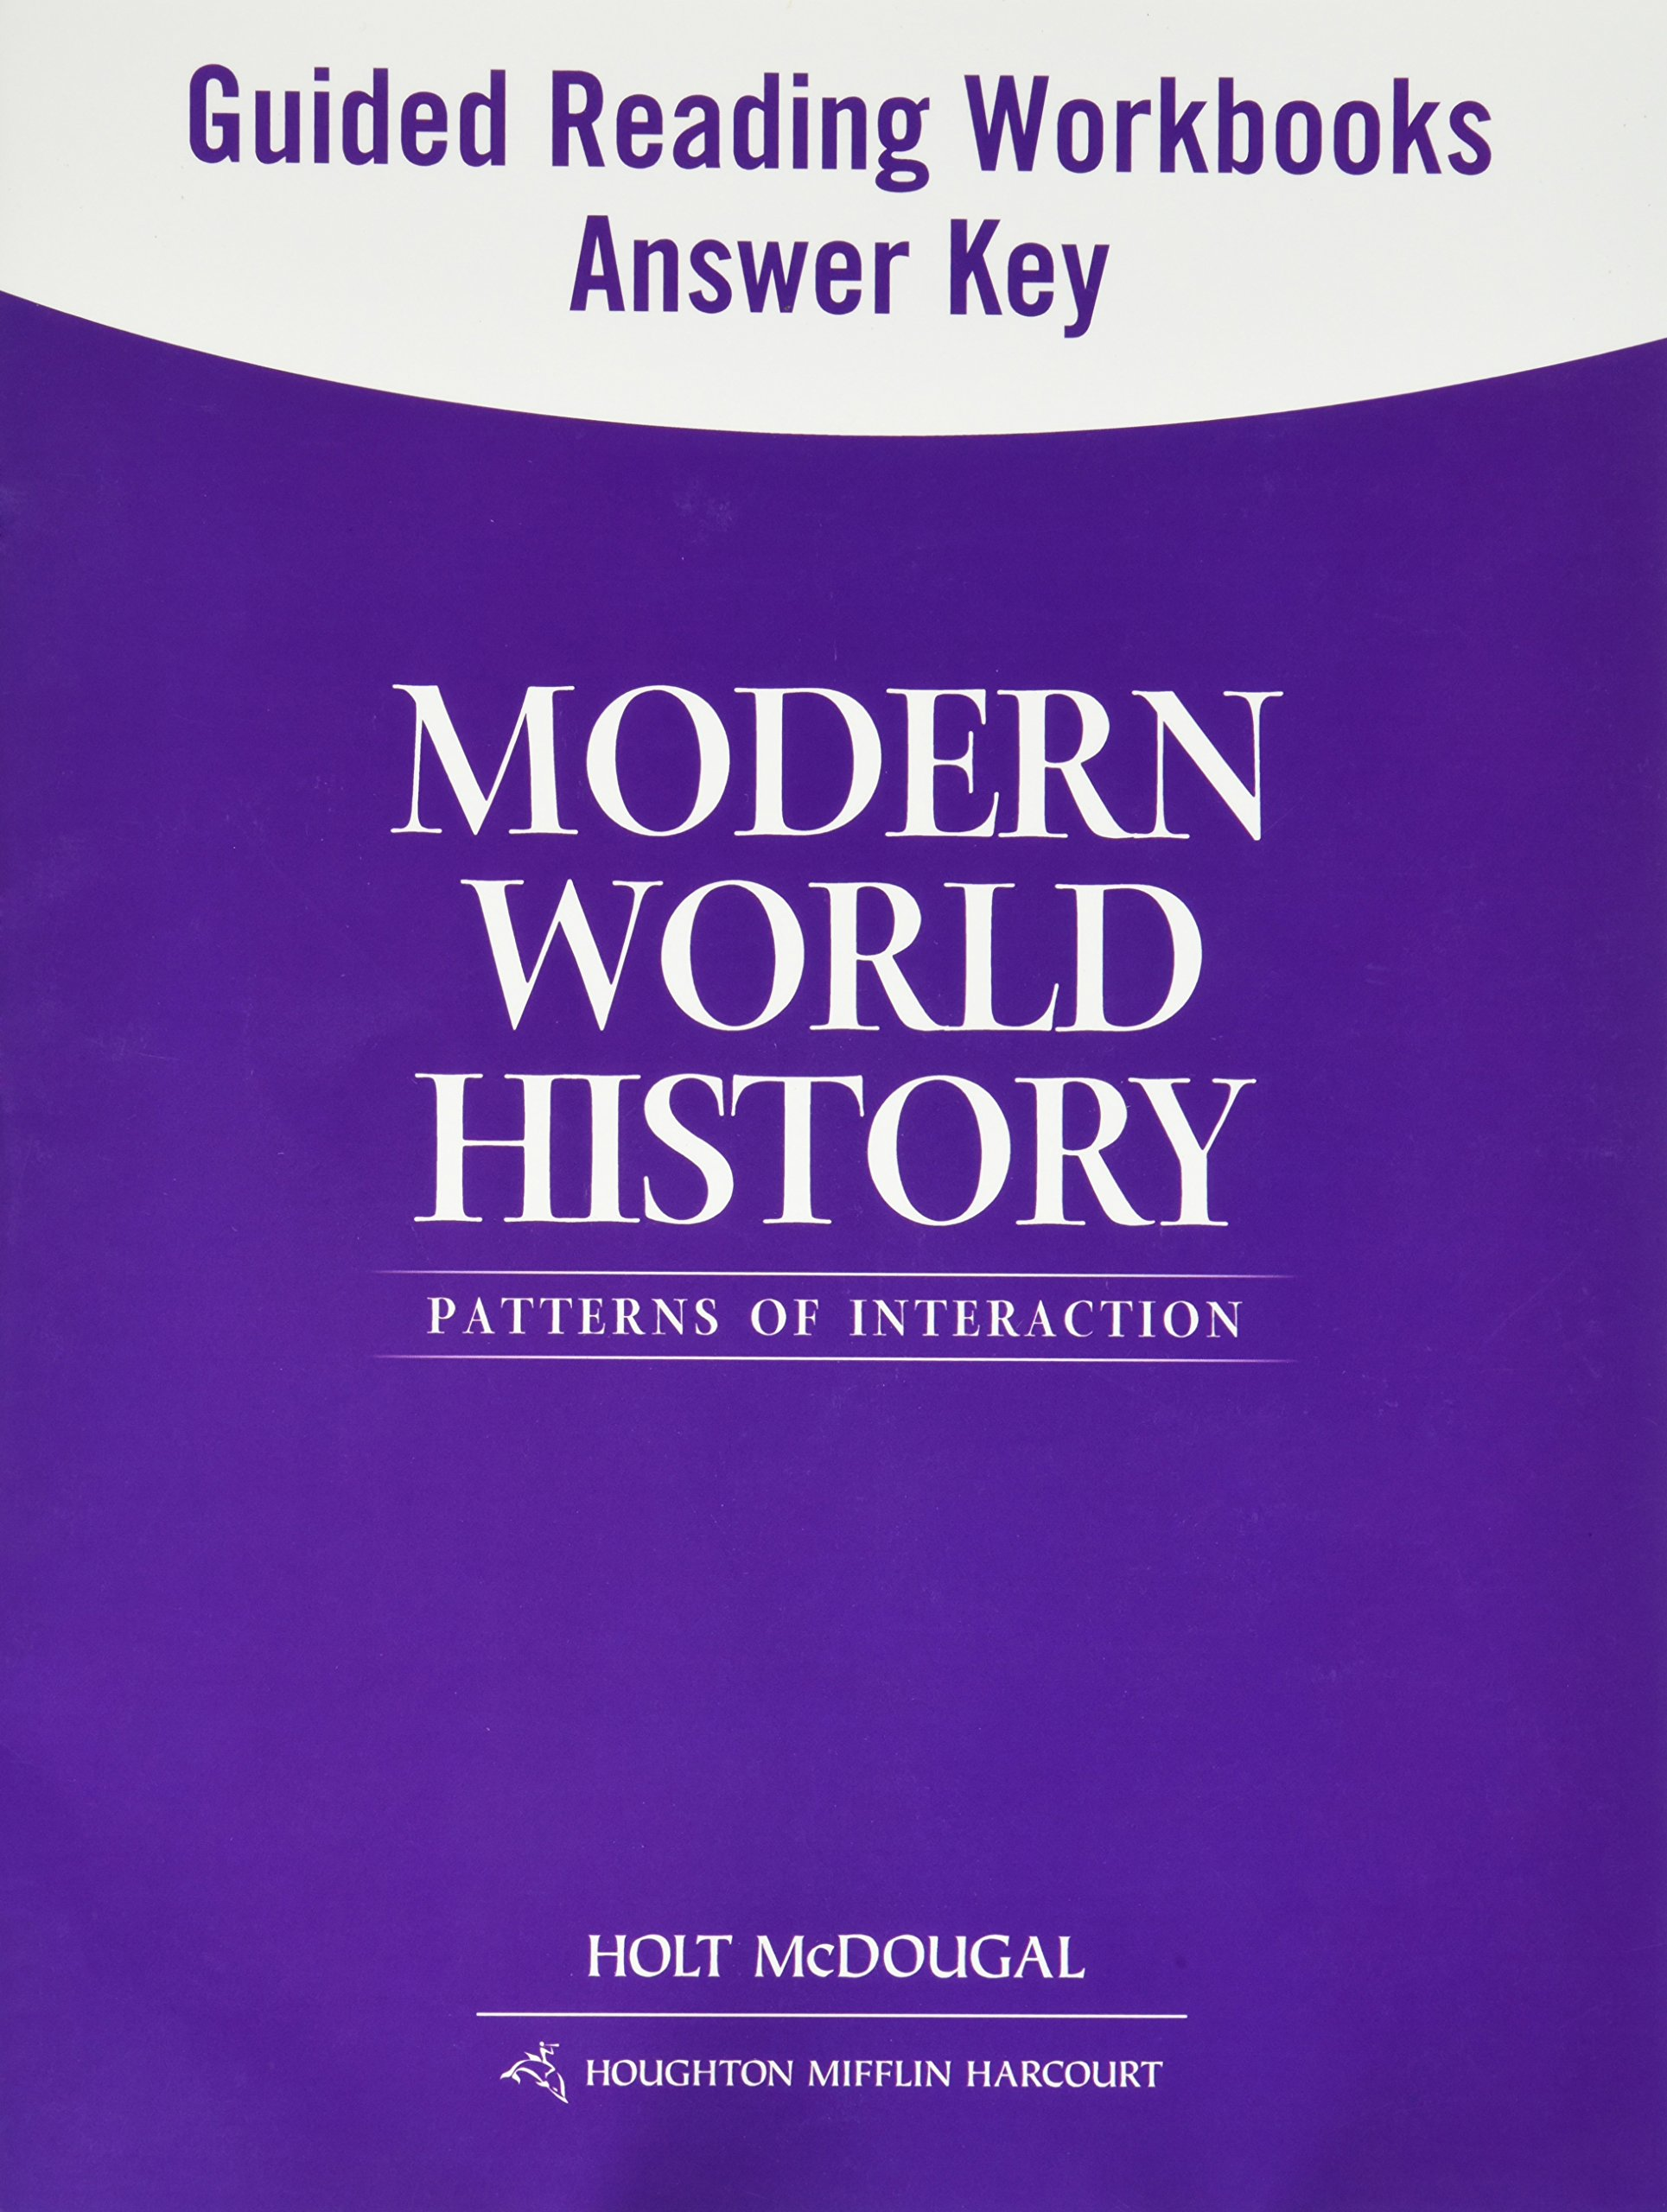 Modern World History: Patterns of Interaction: Guided Reading and  Spanish/English Guided Reading Workbooks Answer Key (Spanish Edition): Holt  McDougal ...